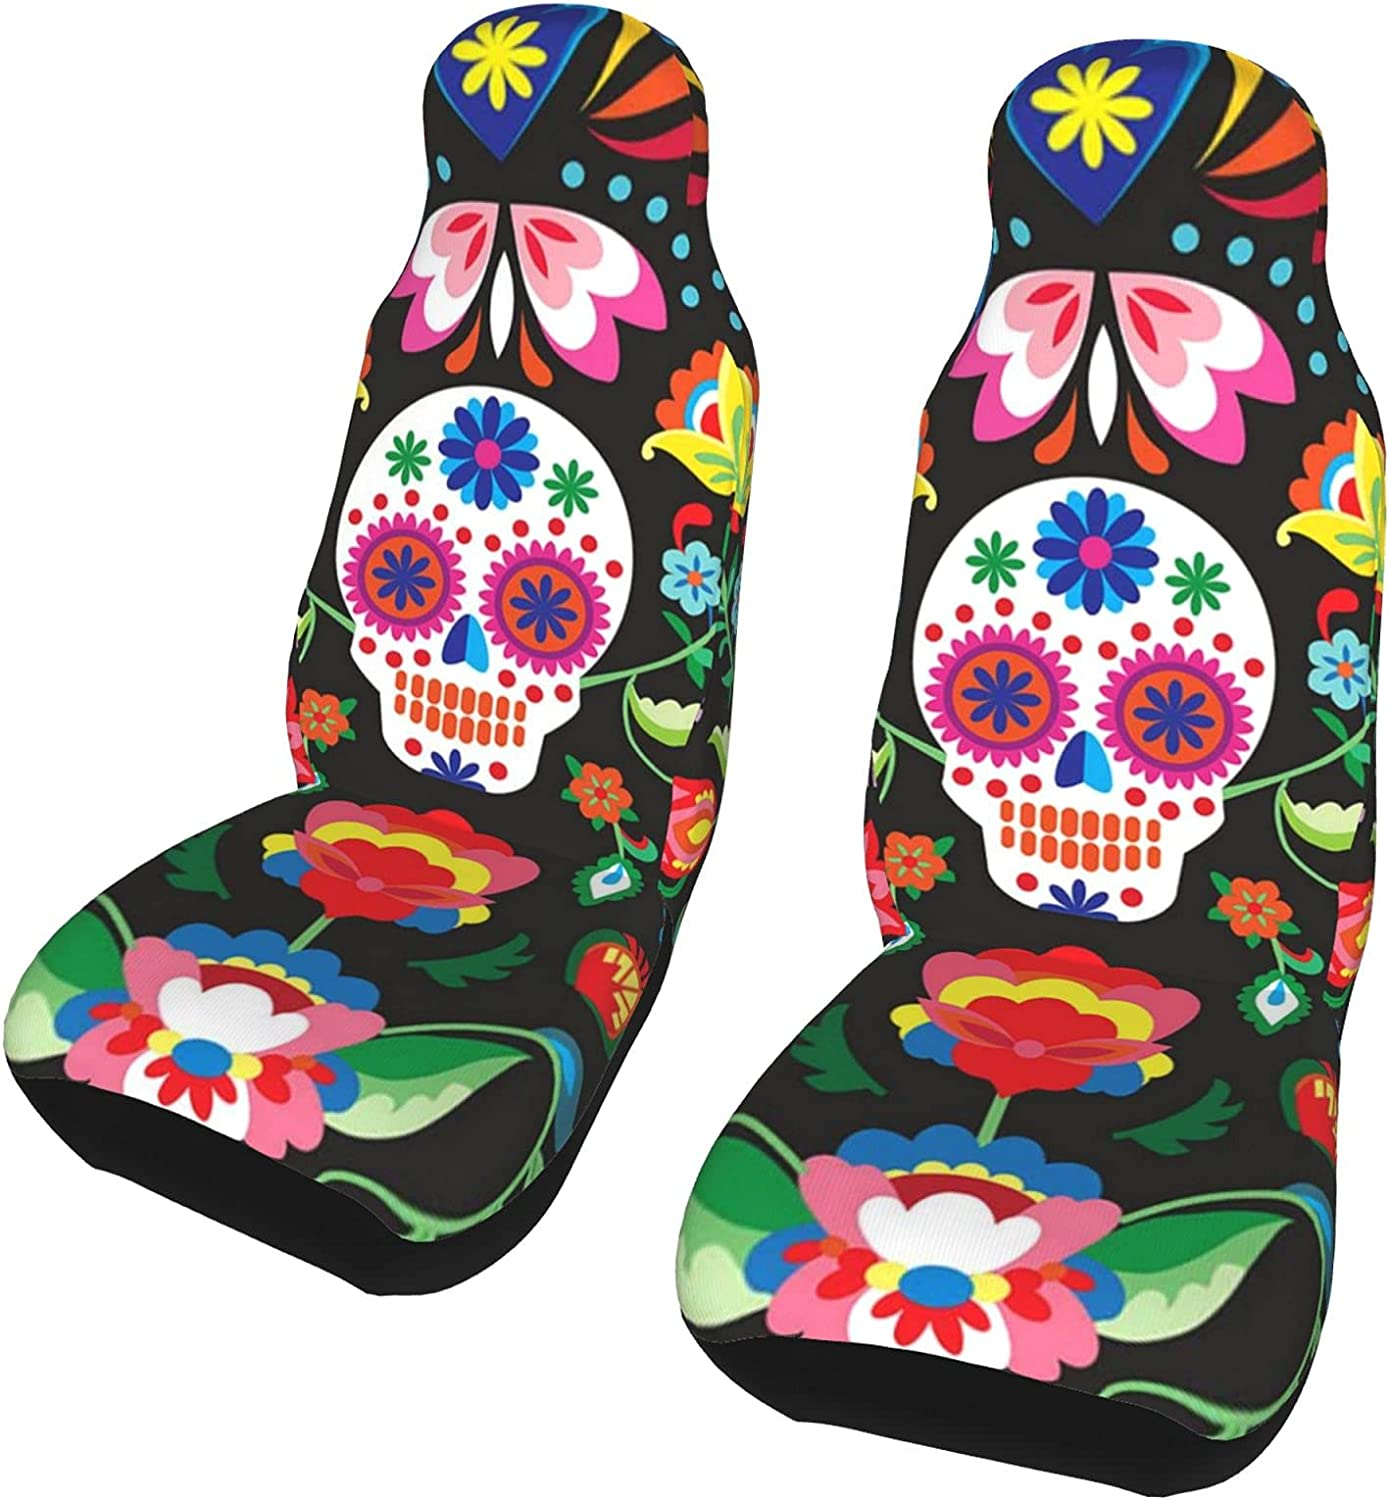 Max 47% OFF Inrubie Flower Skull of Mexican Popular product 2 Seat Pcs Front Covers Car